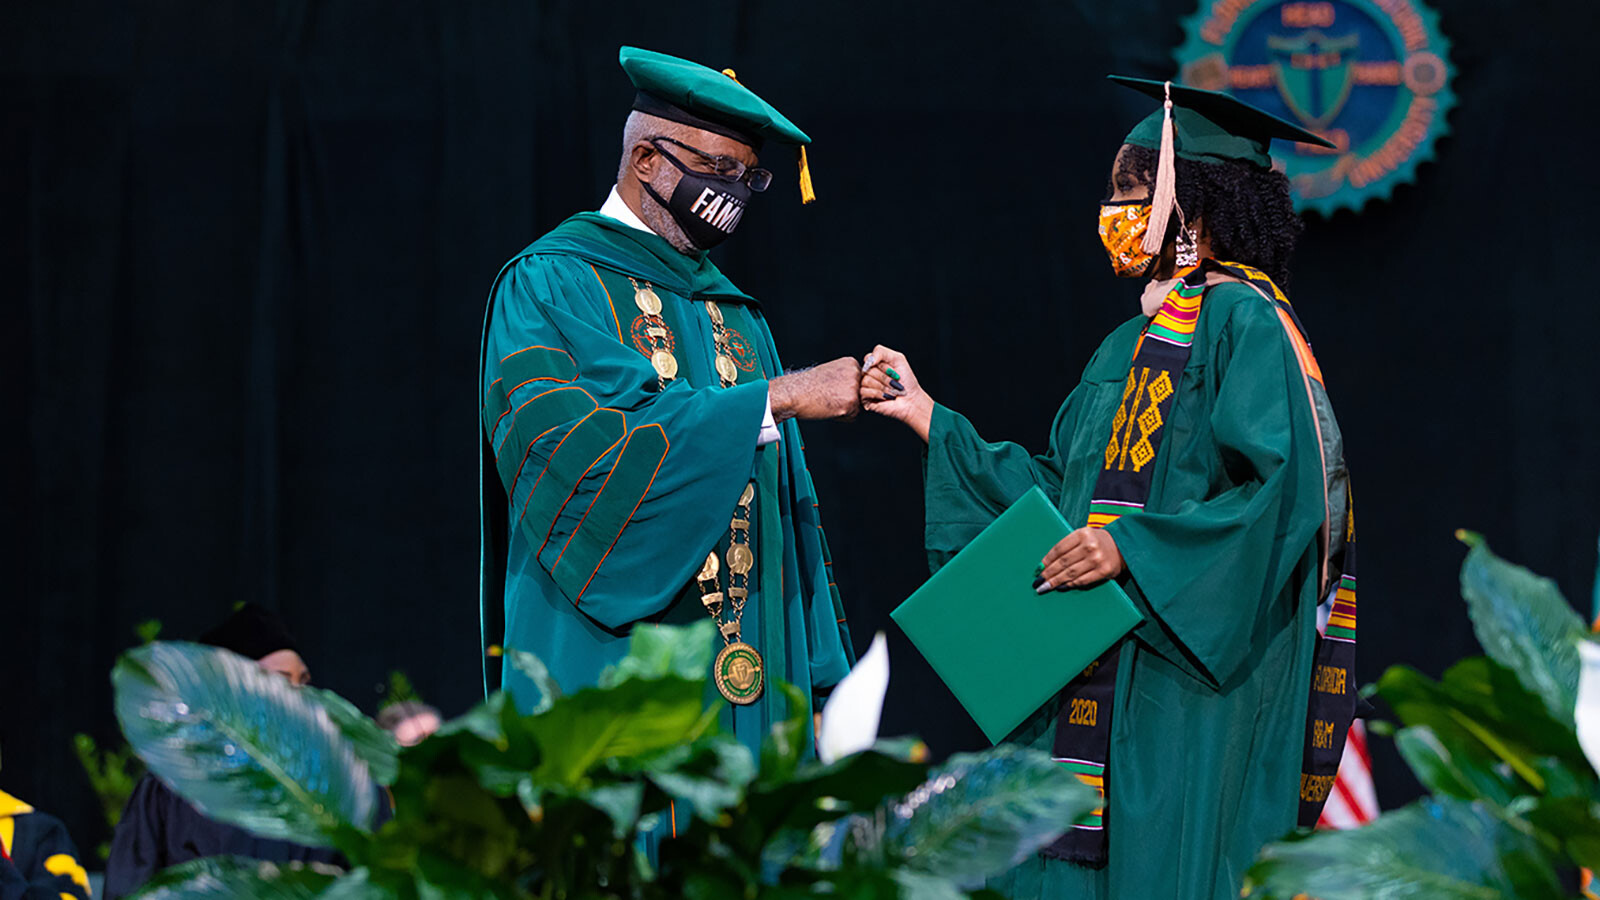 Florida A&M becomes the latest HBCU to forgive student debt, totaling over $16M, for the 2020-21 graduating class